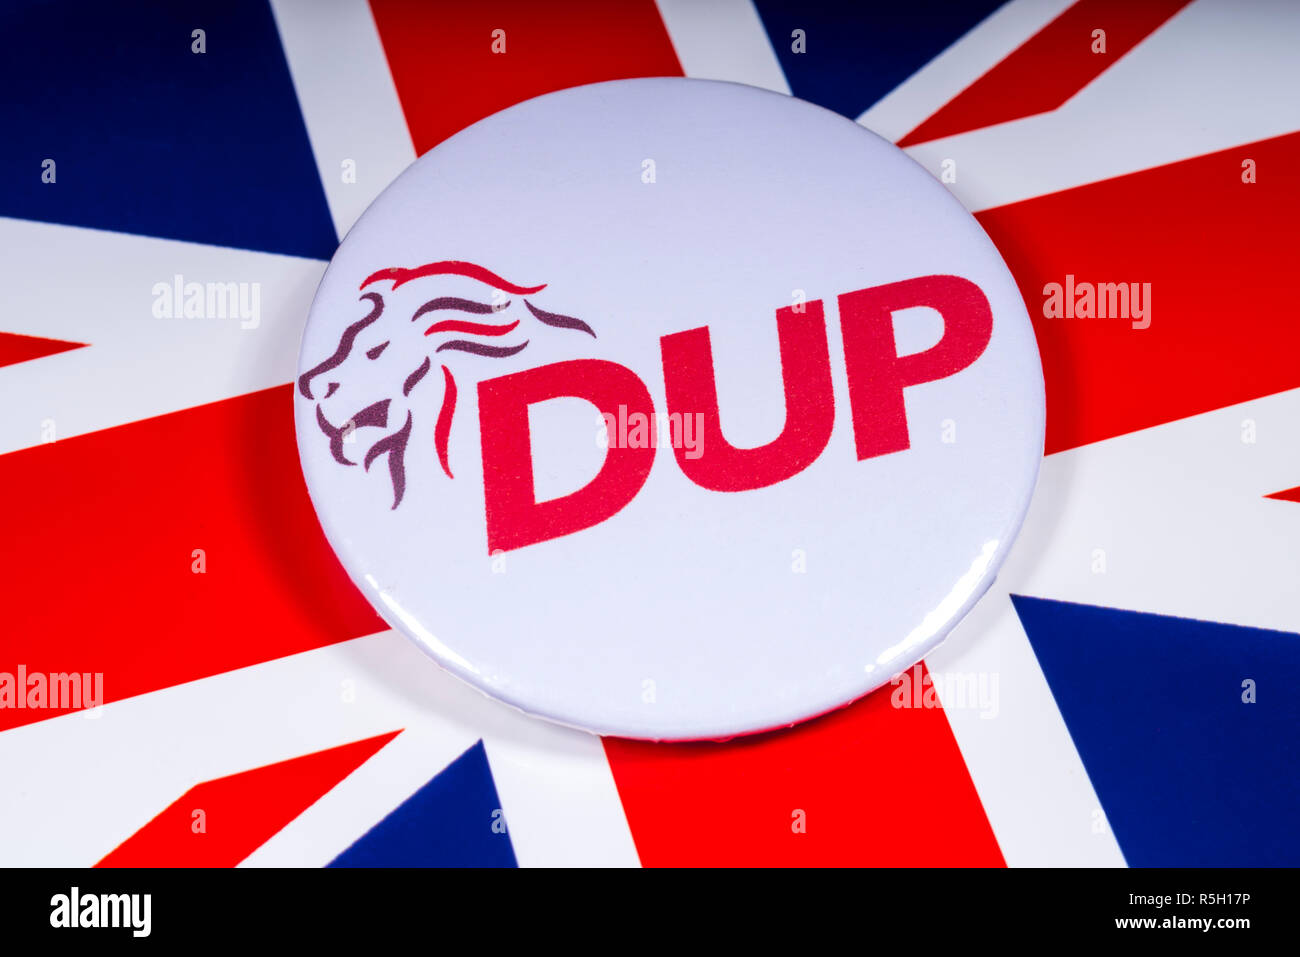 London, UK - November 15th 2018: A Democratic Unionist Party pin badge, pictured over the UK flag. - Stock Image